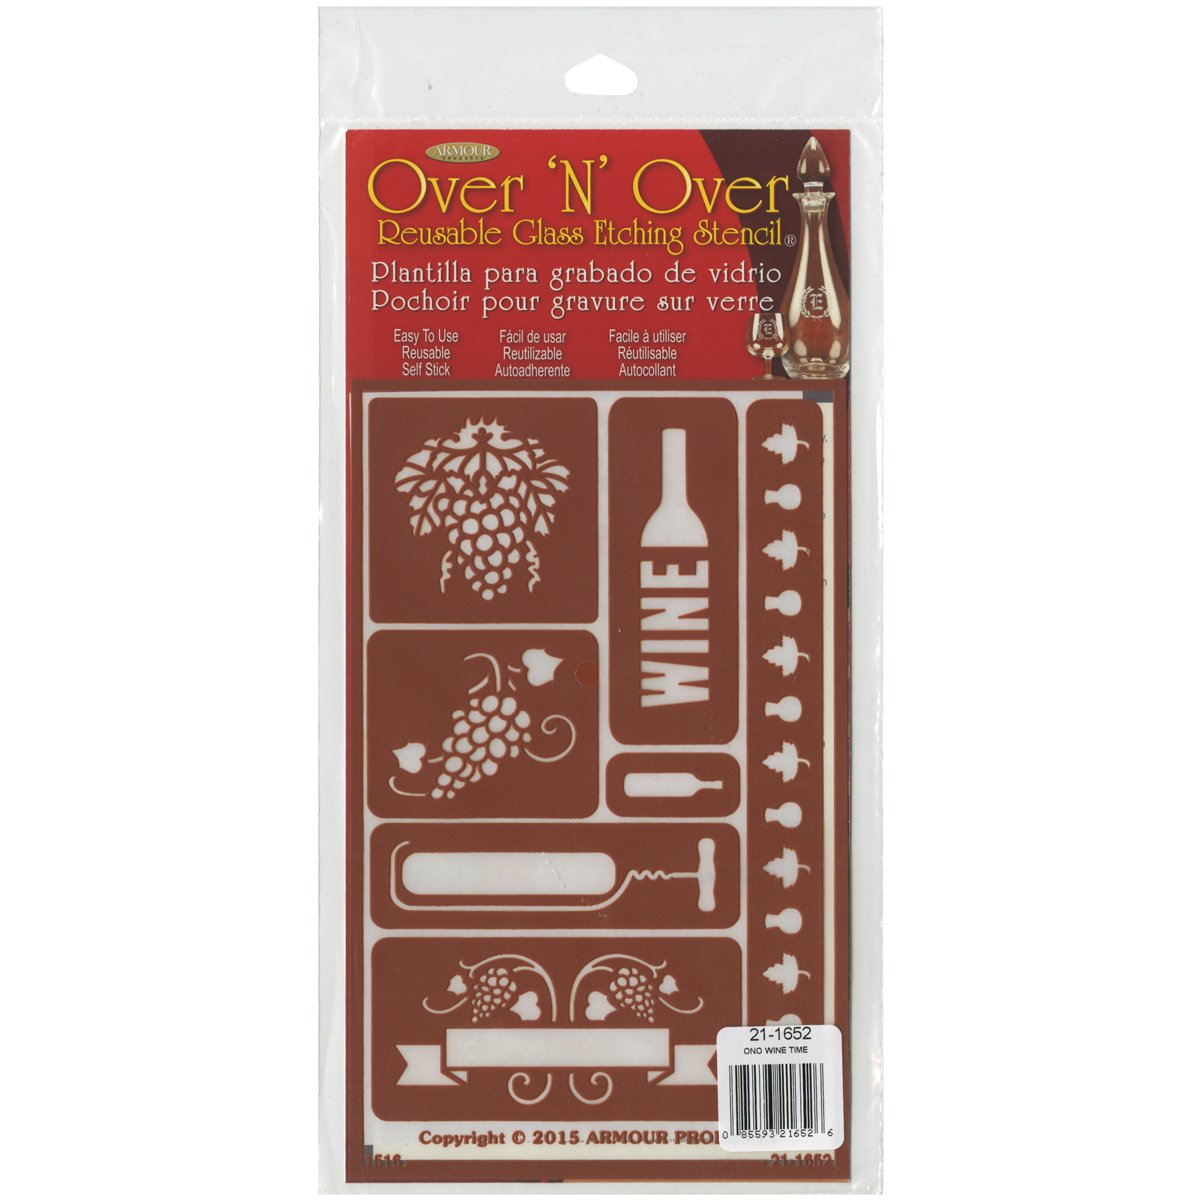 Over 'N' Over Reusable Stencils 5X8-Wine Time Armour Products